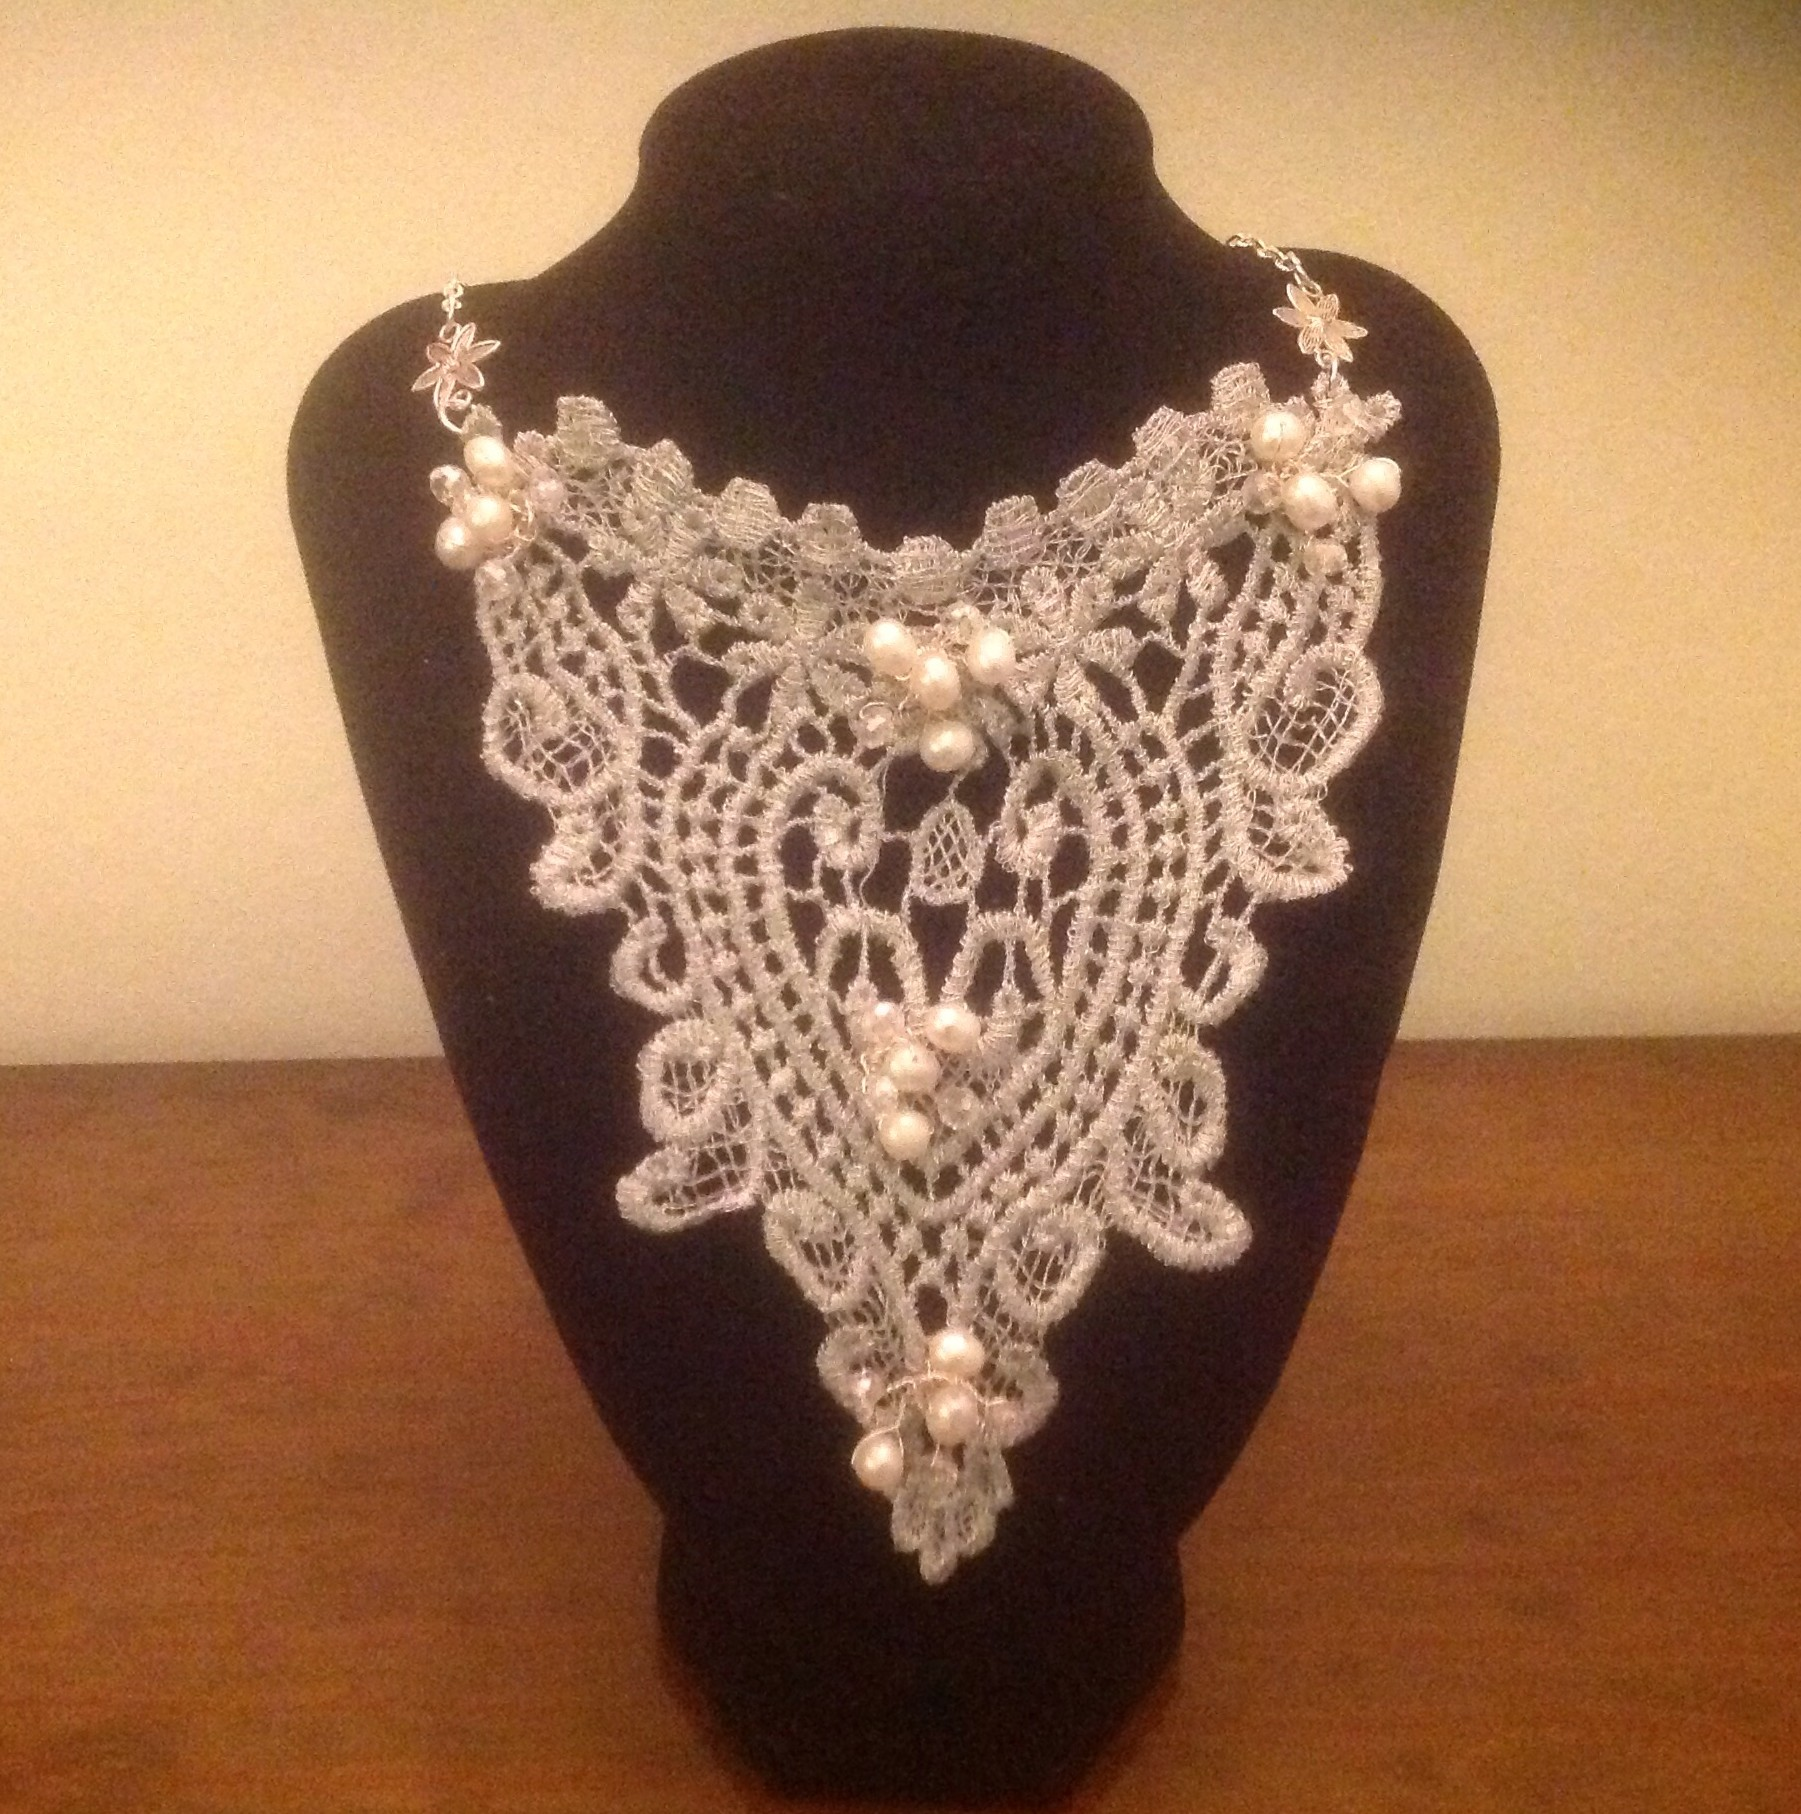 Lace, Freshwater Pearl & Quartz Necklace